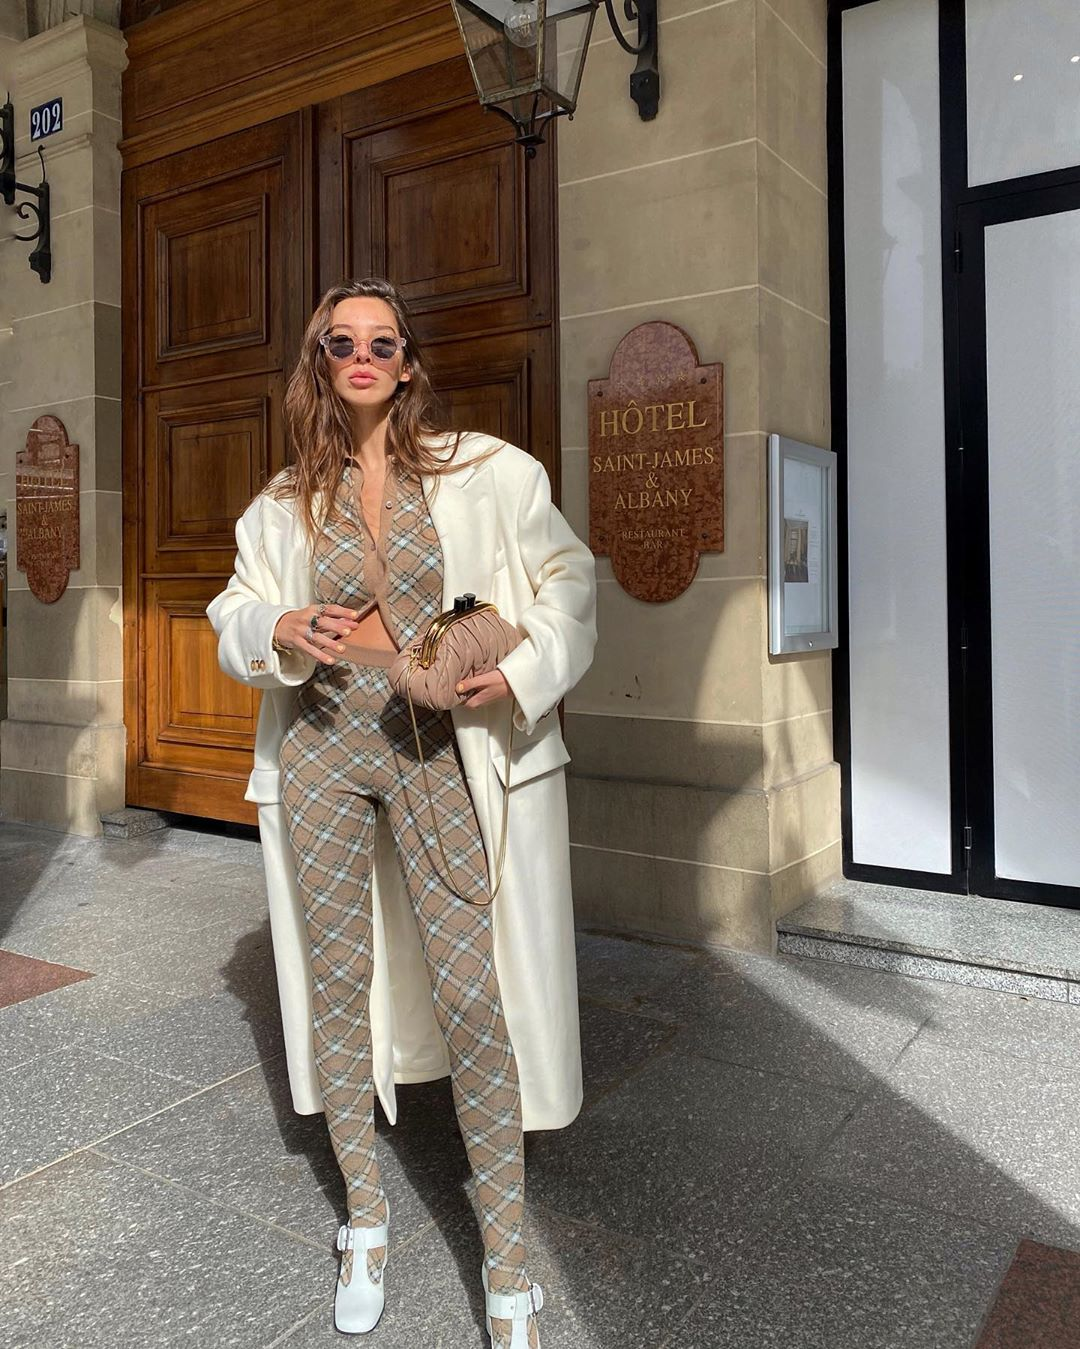 estelle-chemouny-miu-miu-checked-wool-outfit-paris-street-style